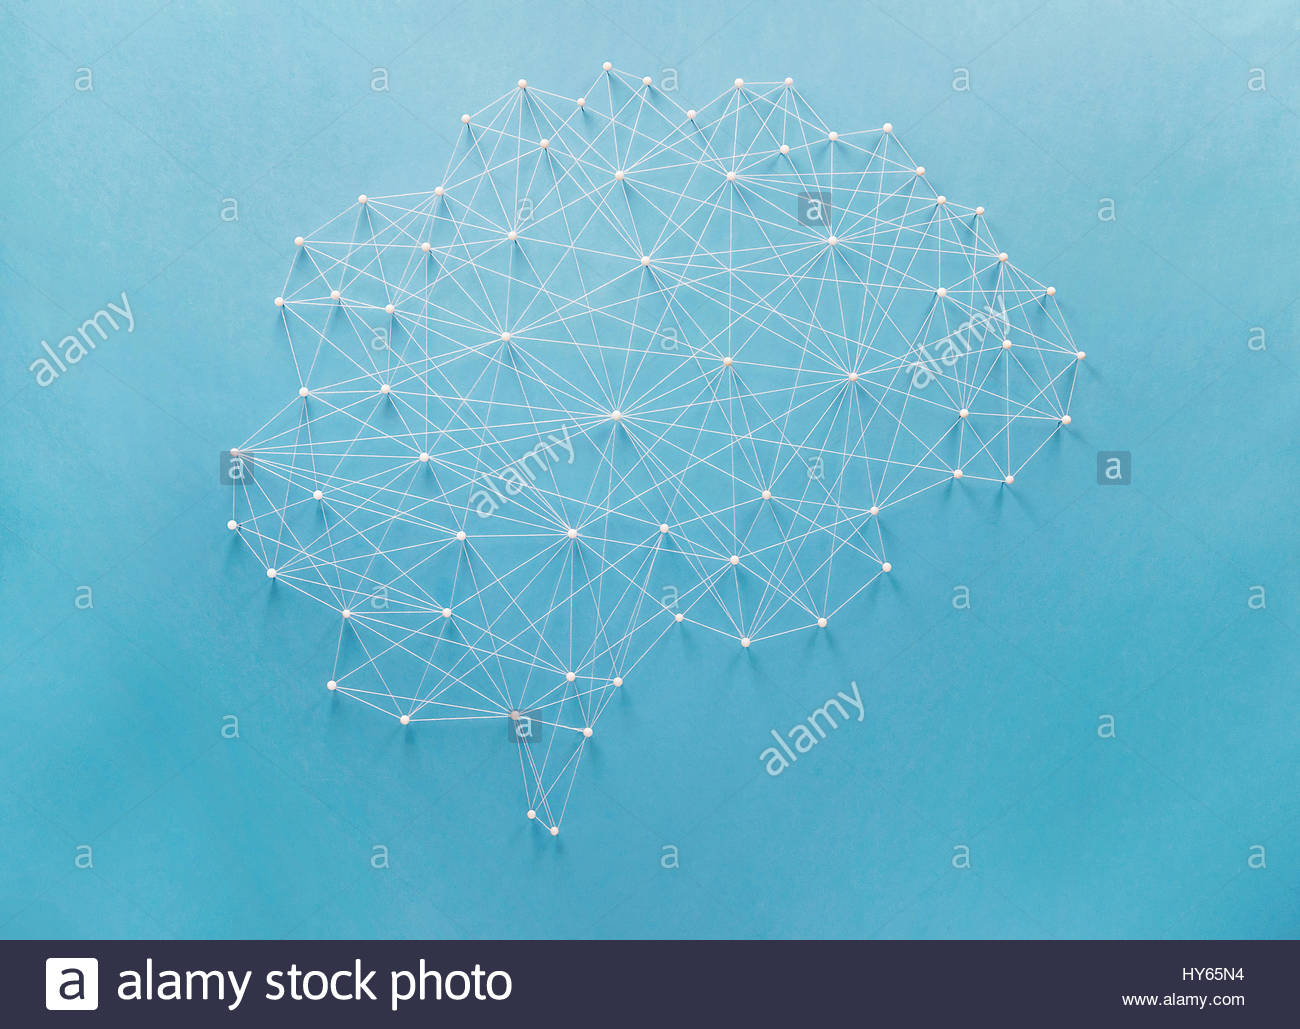 Neural network created by pins and threads - Stock Image